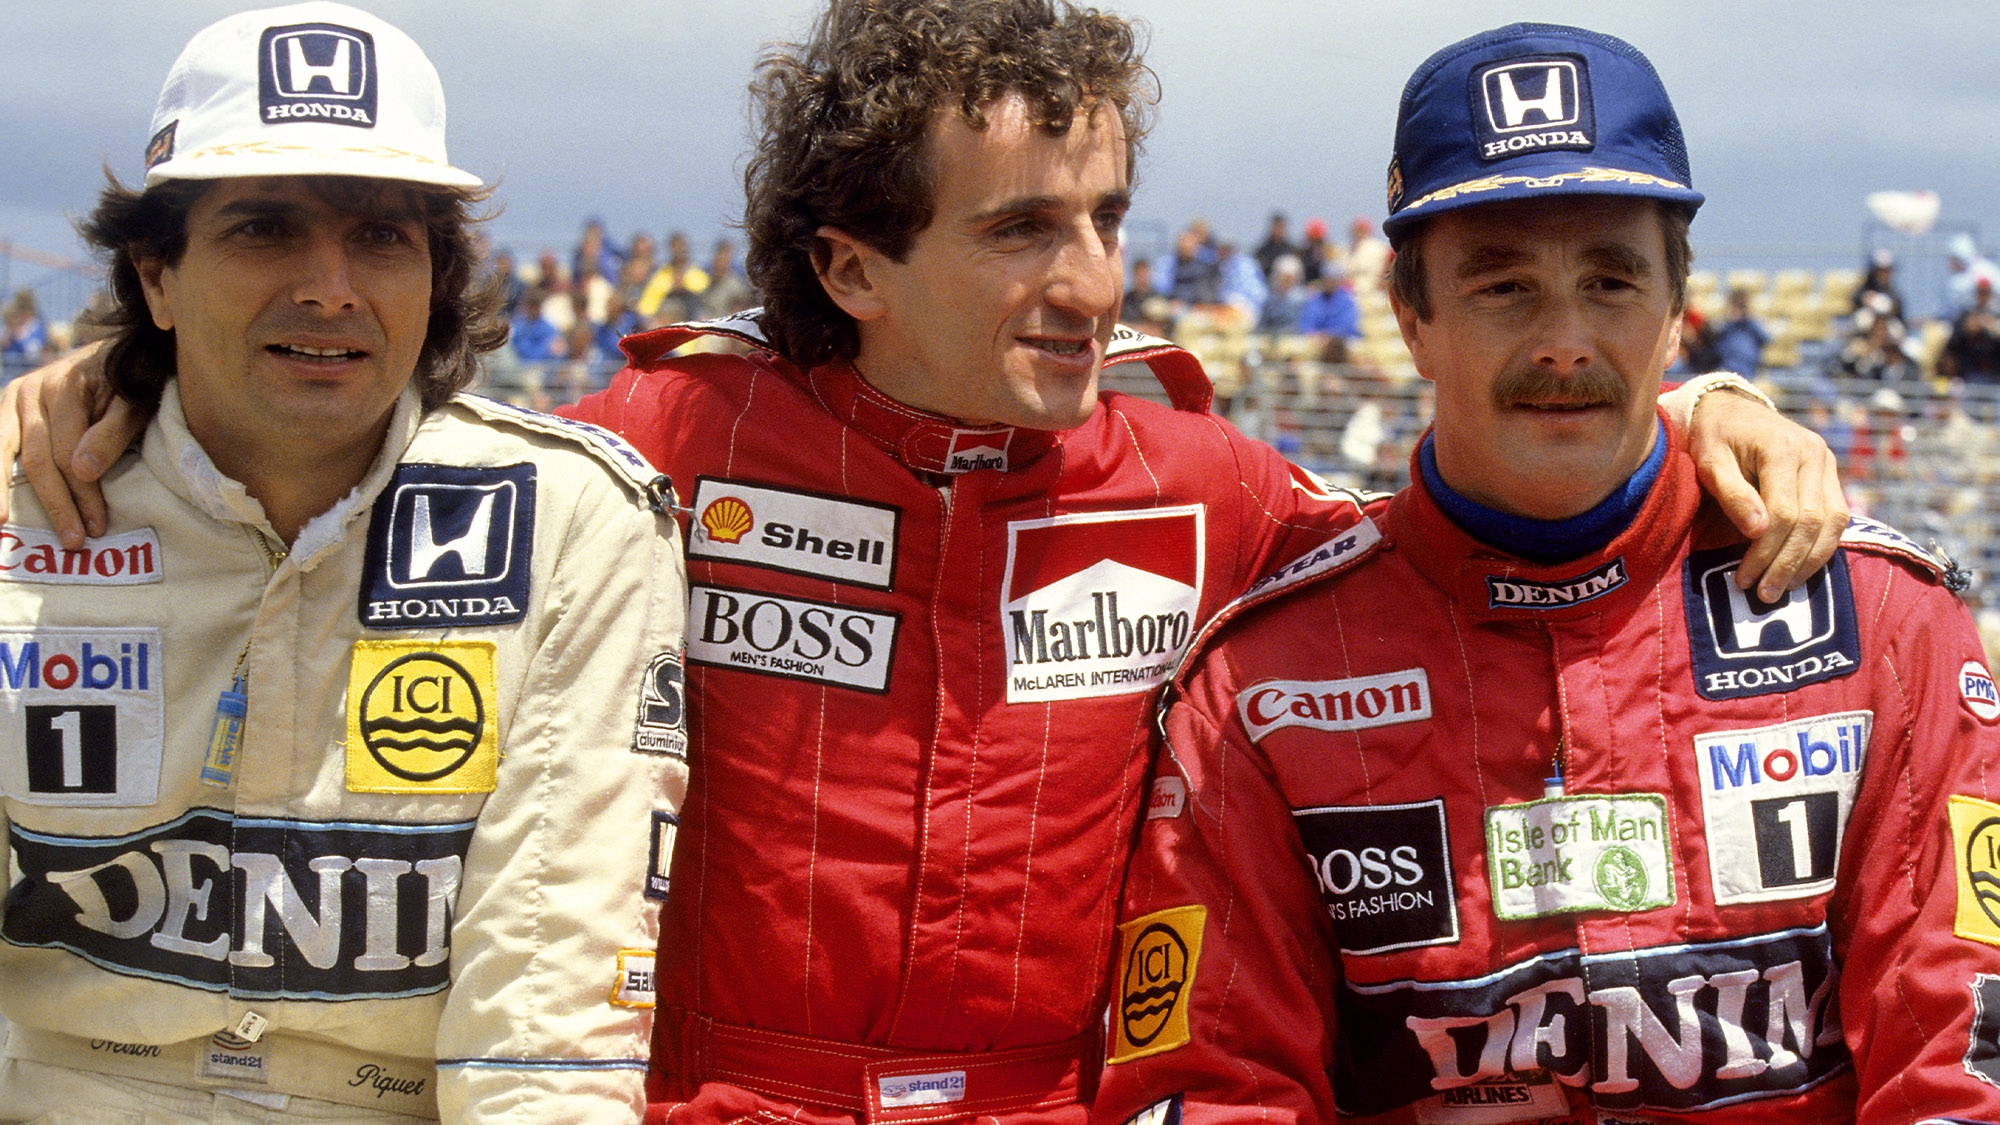 Nelson Piquet, Alain Prost and Nigel Mansell in Adelaide ahead of the 1986 F1 Australian Grand Prix